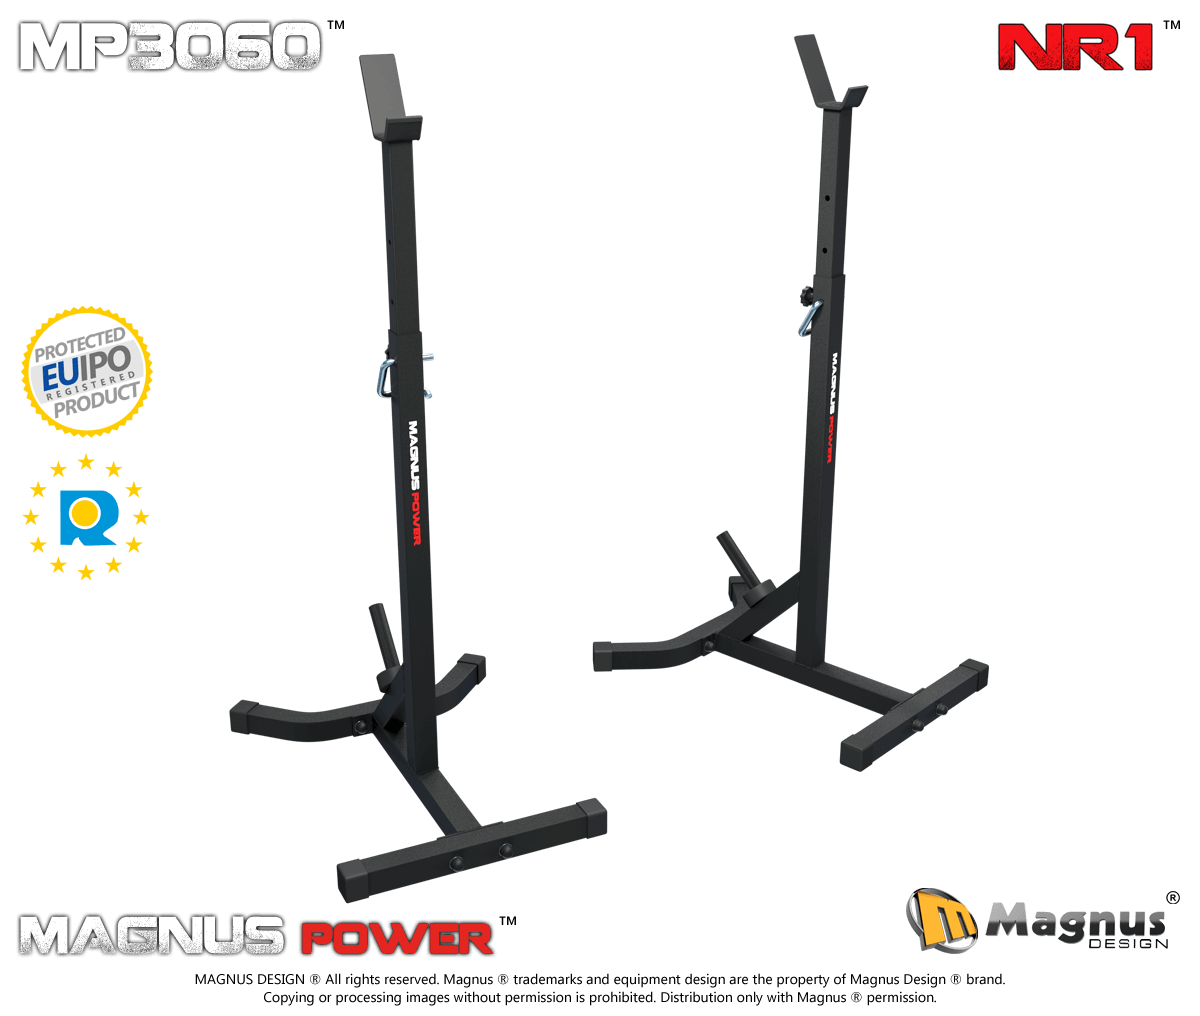 Training stands for barbell Magnus Power MP3060